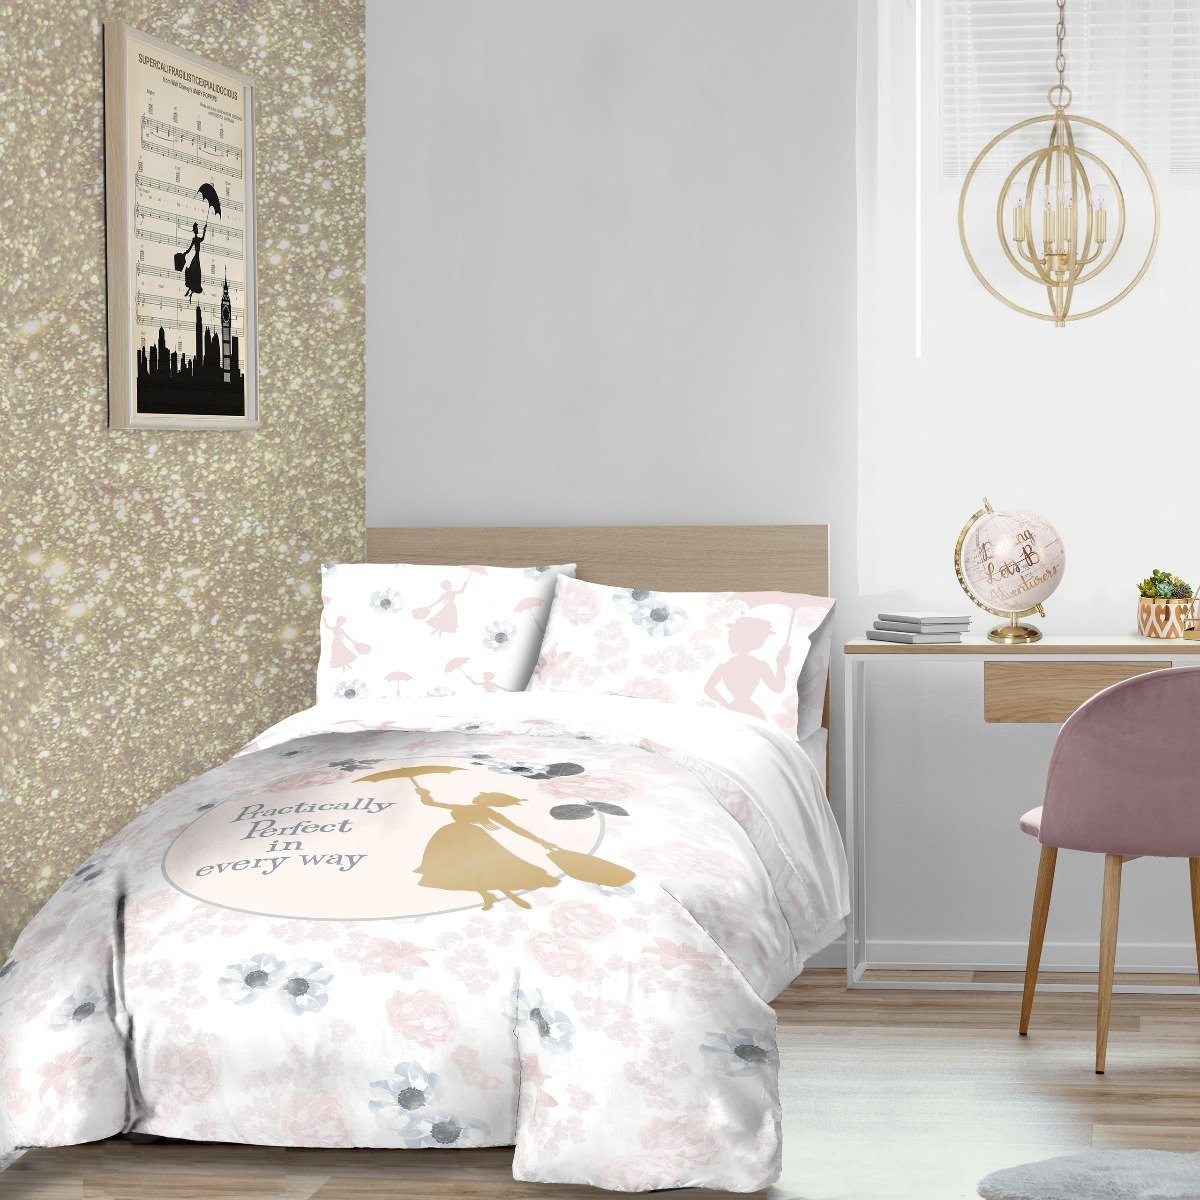 Mary Poppins Perfect Bedding - Reversible Duvet Cover and Pillowcase Set